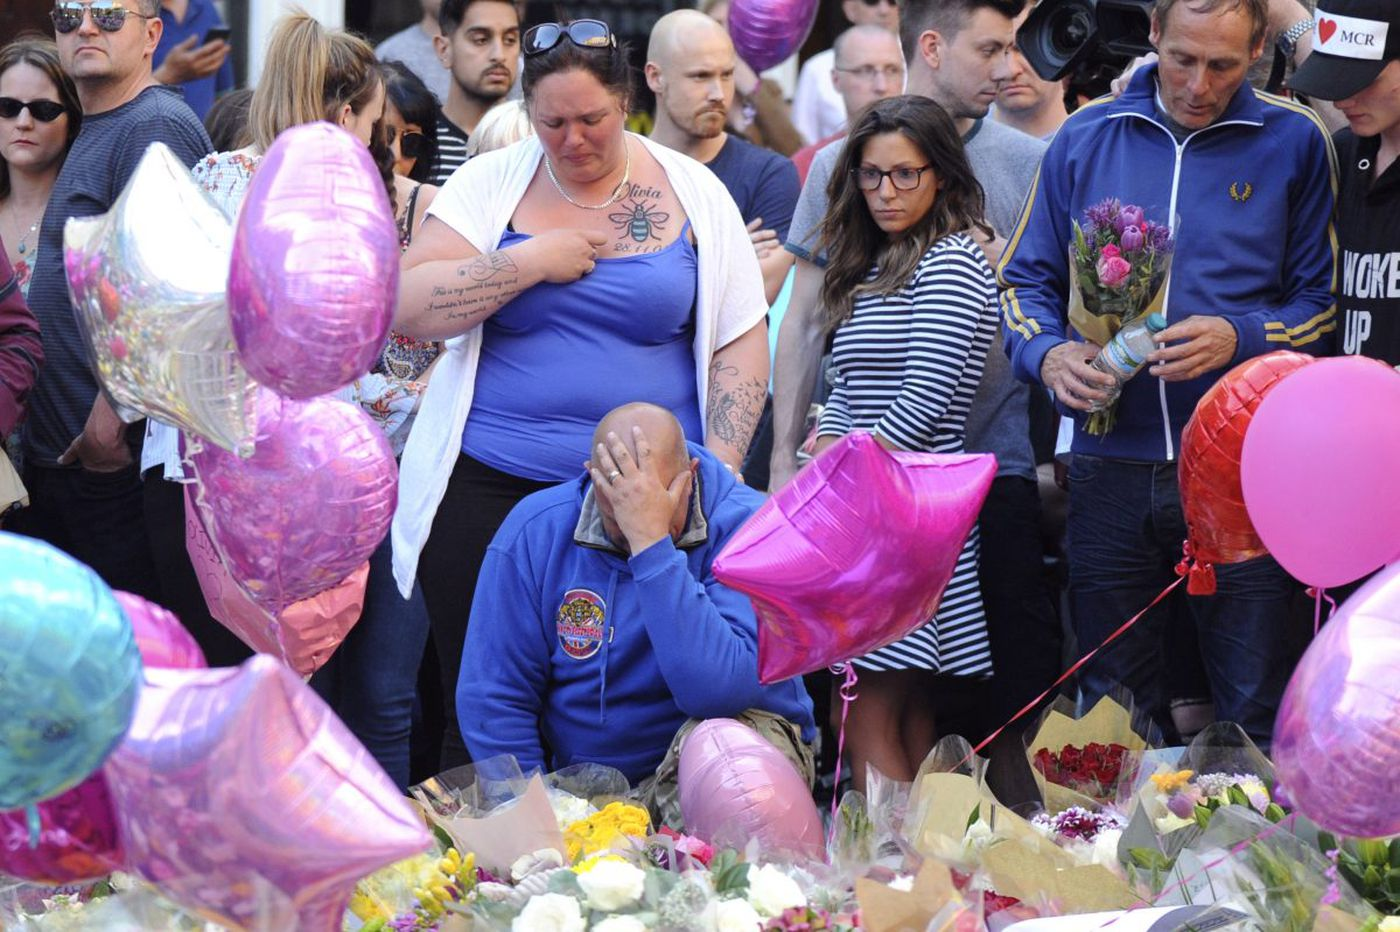 Teaching children resilience in an age of terror